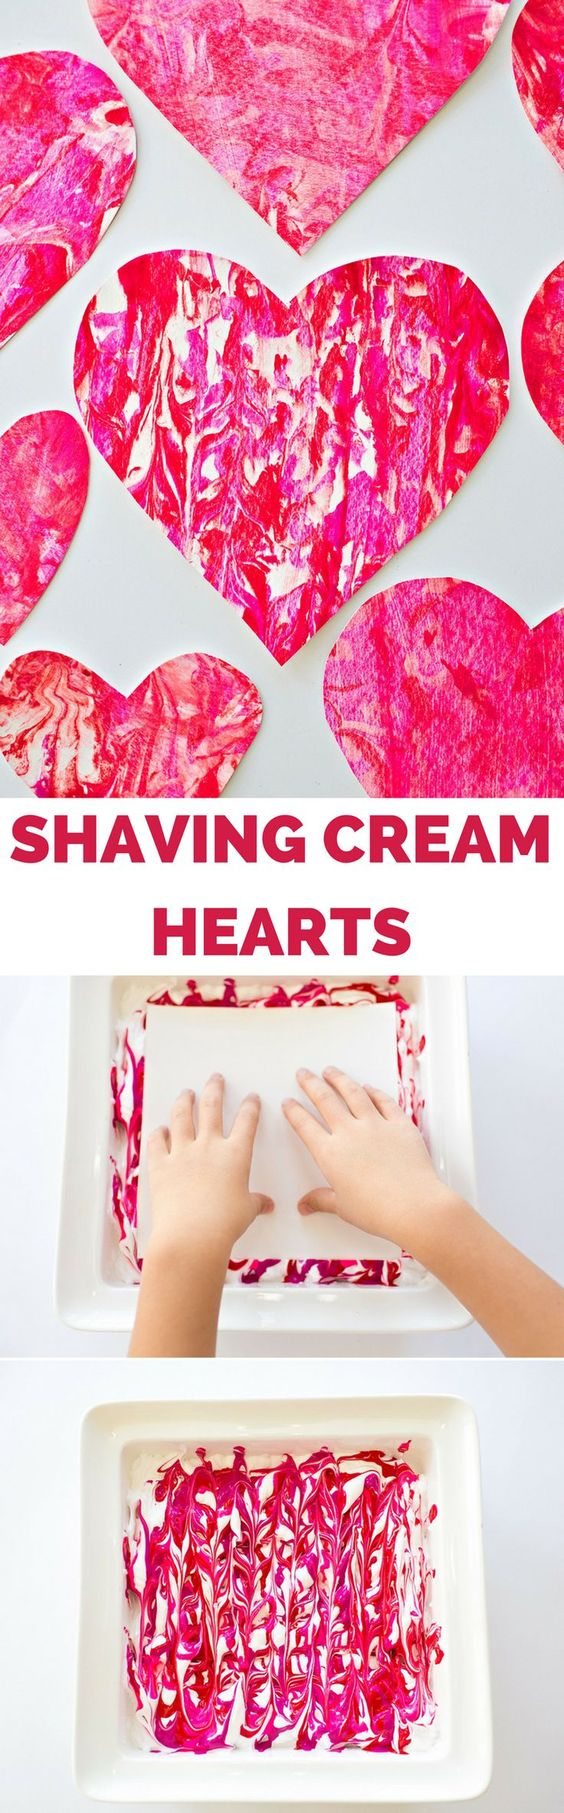 Valentine Shaving Cream Hearts. Fun process art project for kids to make handmade paper valentine prints, cards, garlands and favors!: